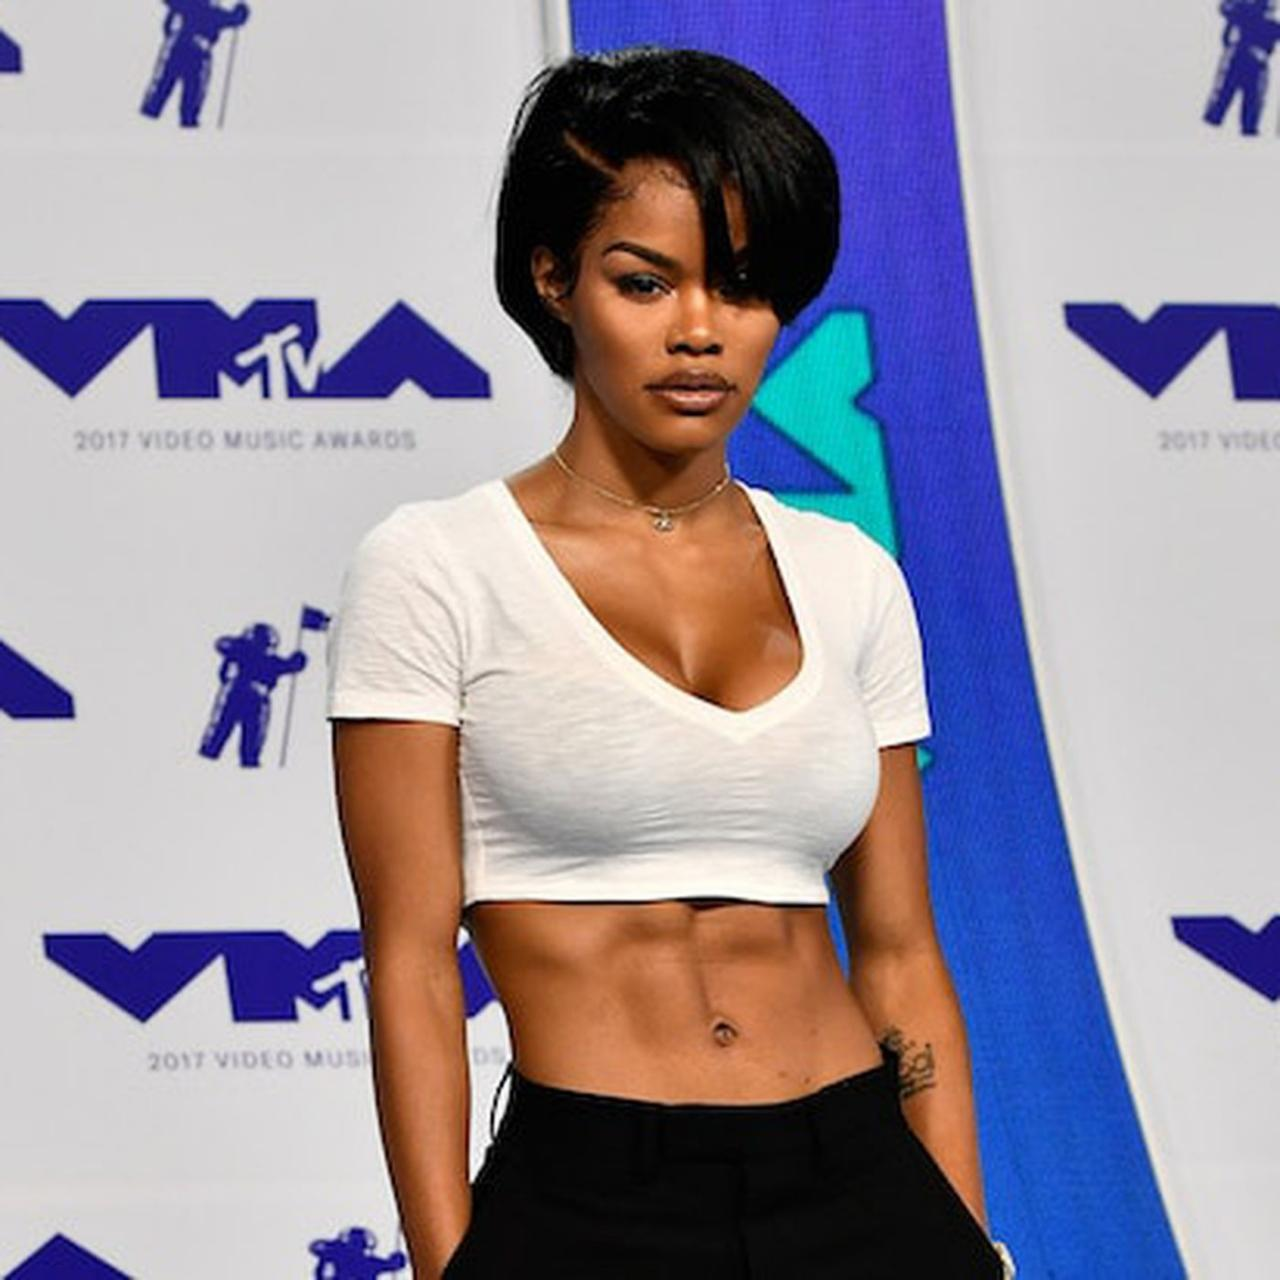 """Teyana Taylor becomes first Black woman to be named """"Sexiest Woman Alive"""" by 'Maxim' - REVOLT"""